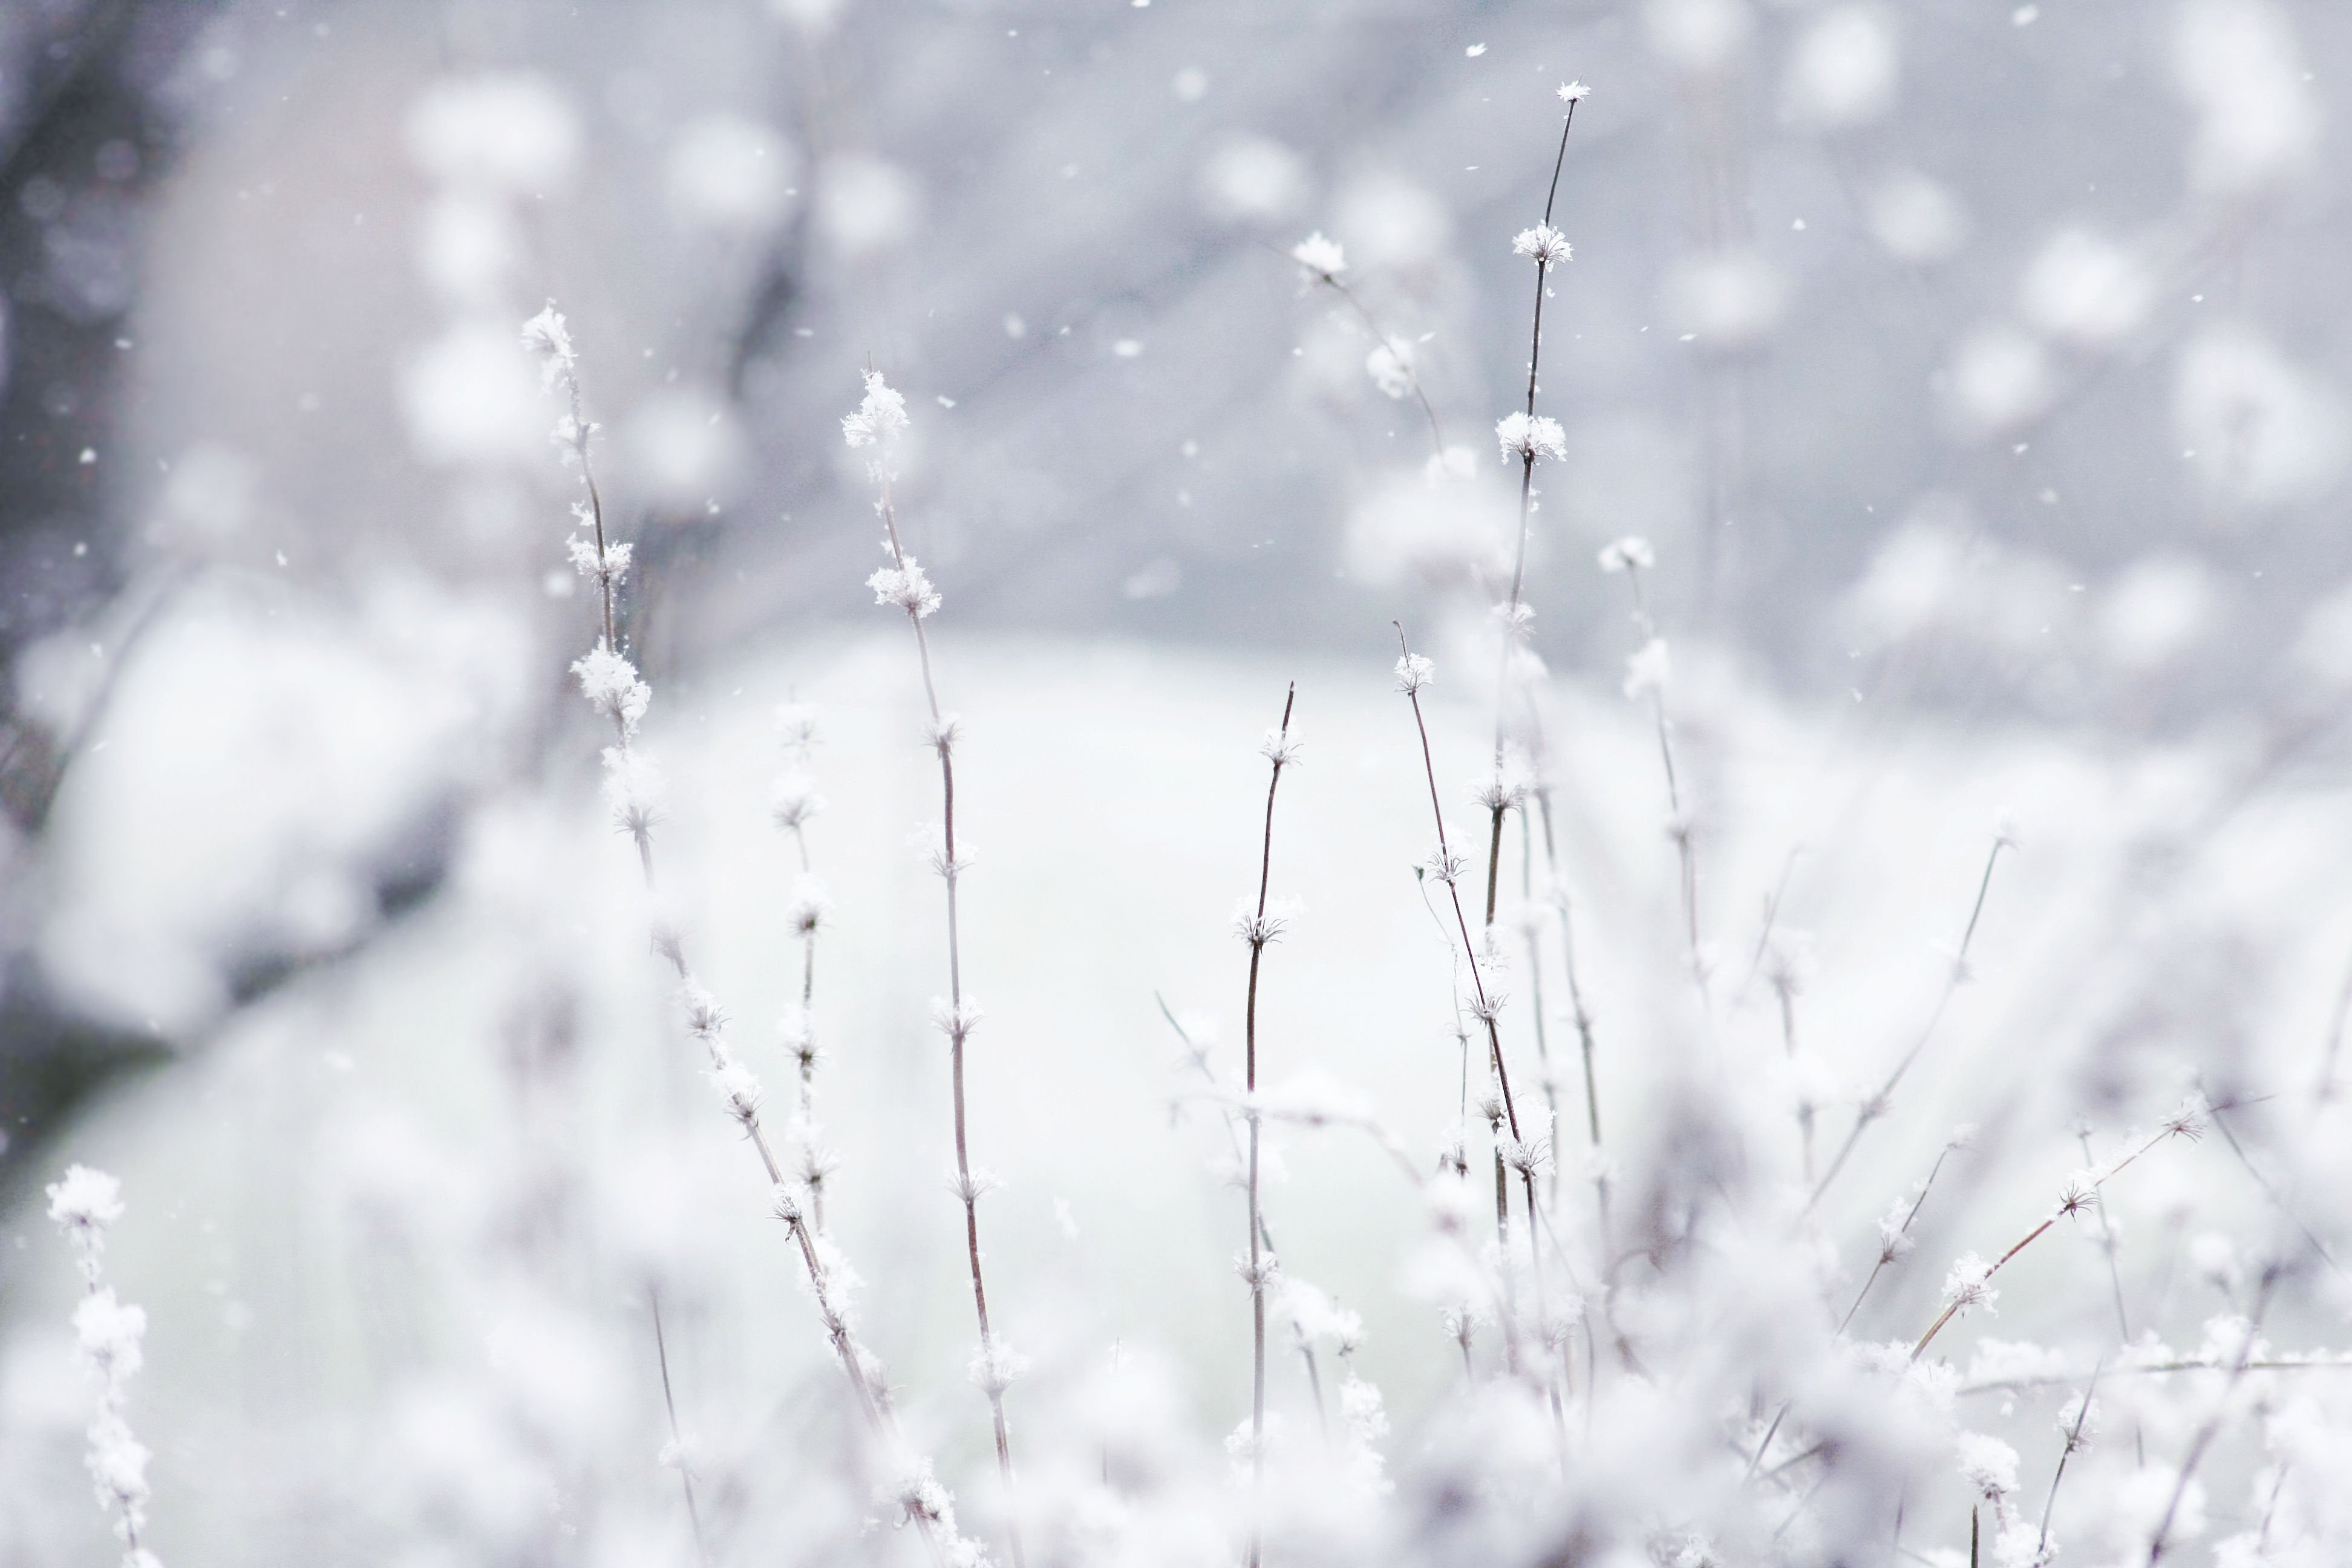 download cute winter wallpaper which is under the winter wallpapers 3888x2592